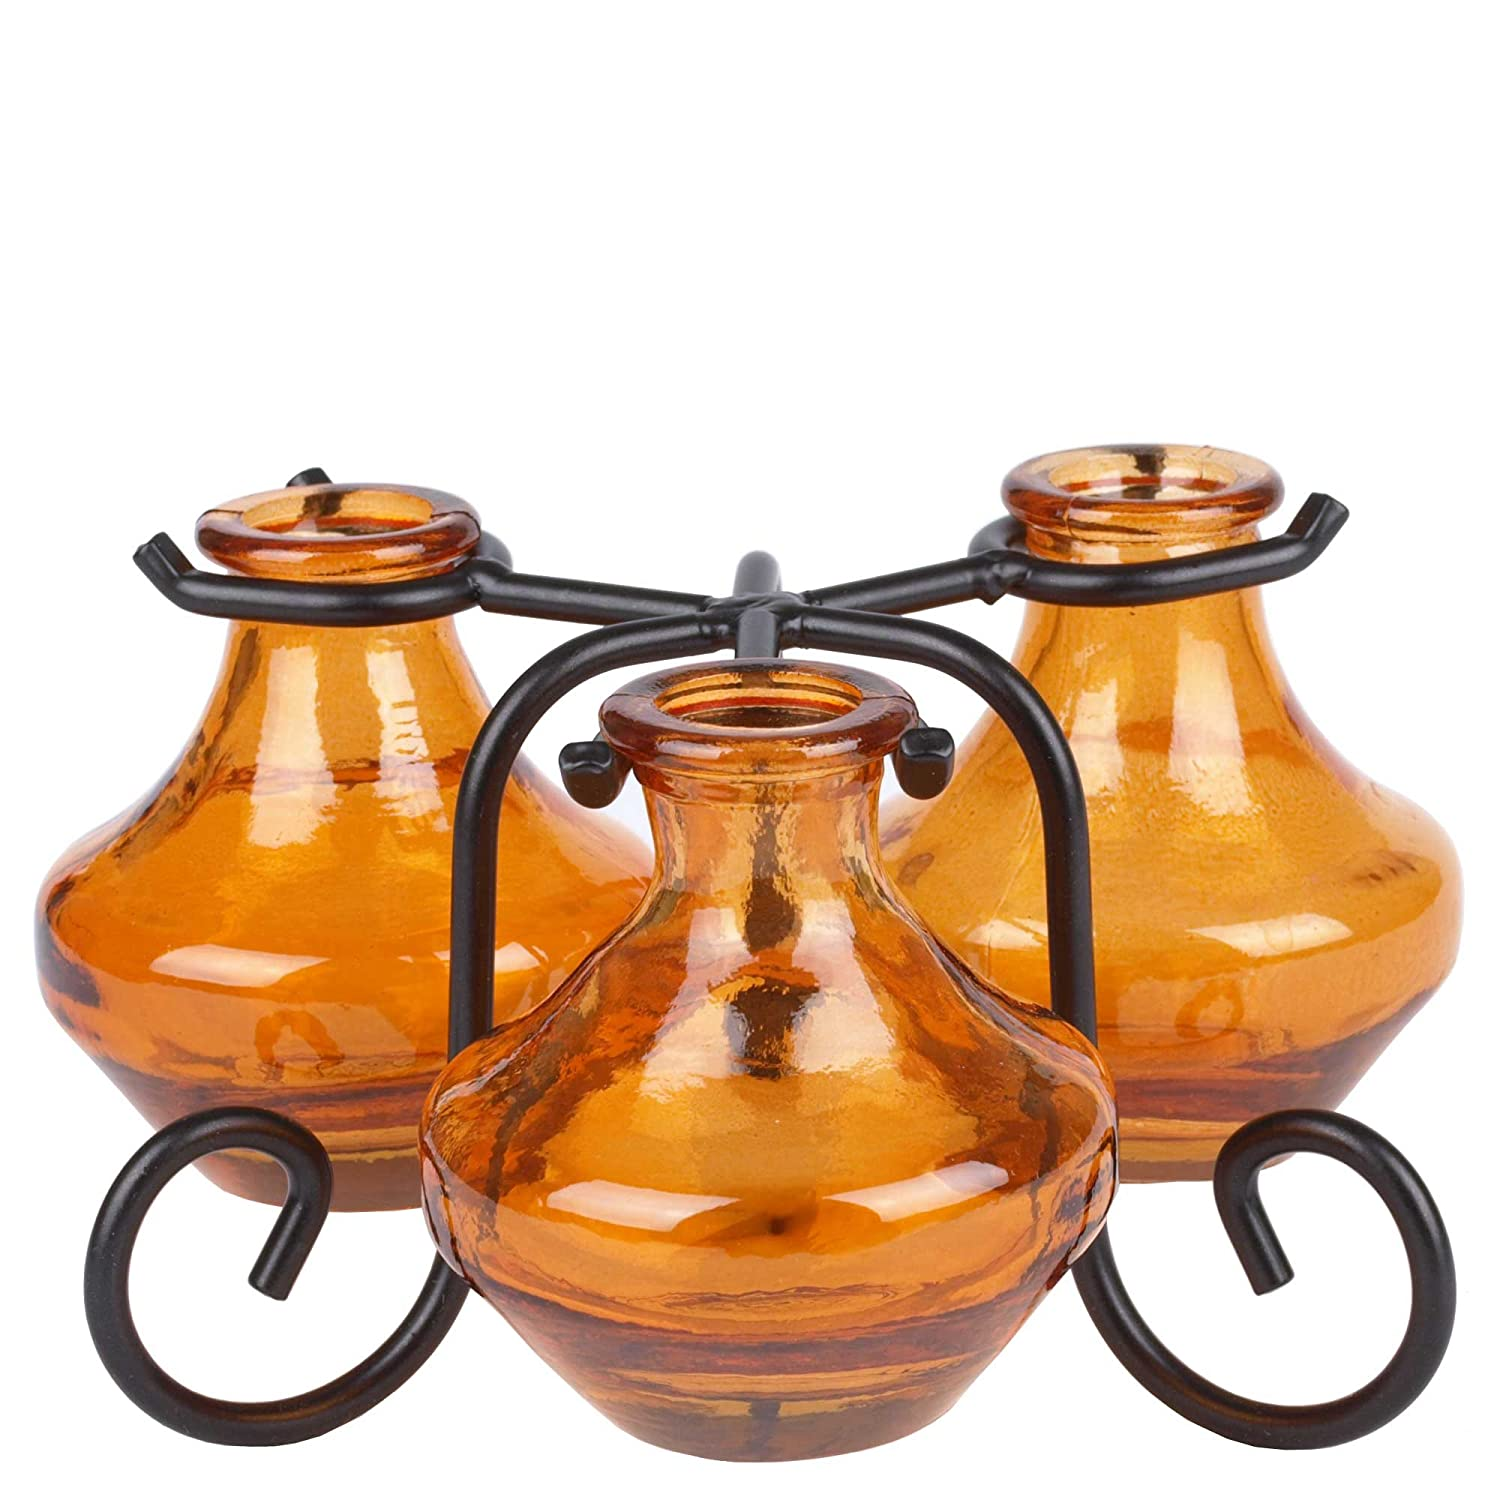 3 1//2 1 Piece Orange Couronne Company M050-G5766G08 Genie Three Recycled Glass Vases /& Metal Stand